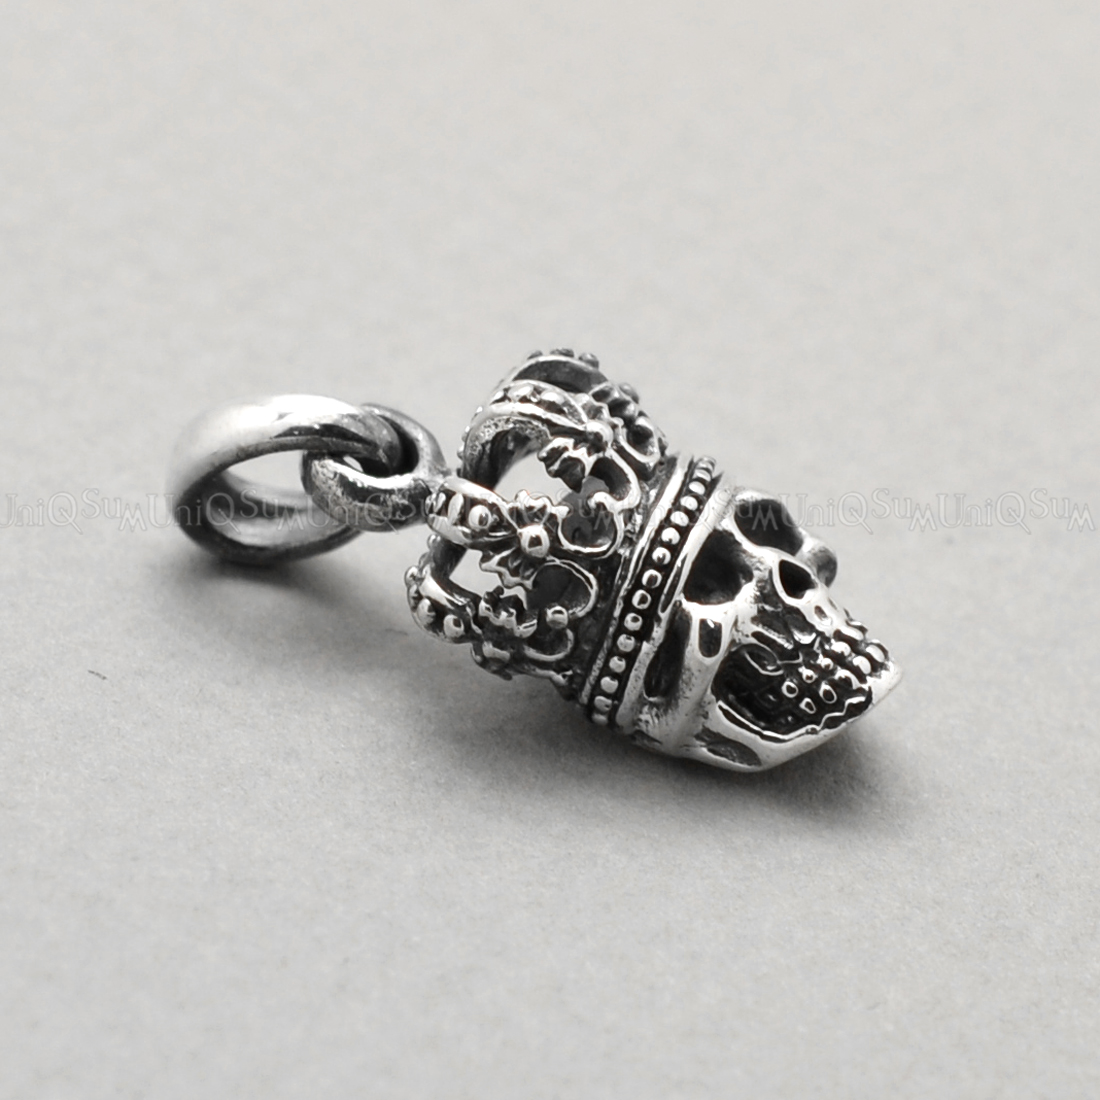 Colored Eyes 925 Sterling Silver King Skull Pendant Uniqsum